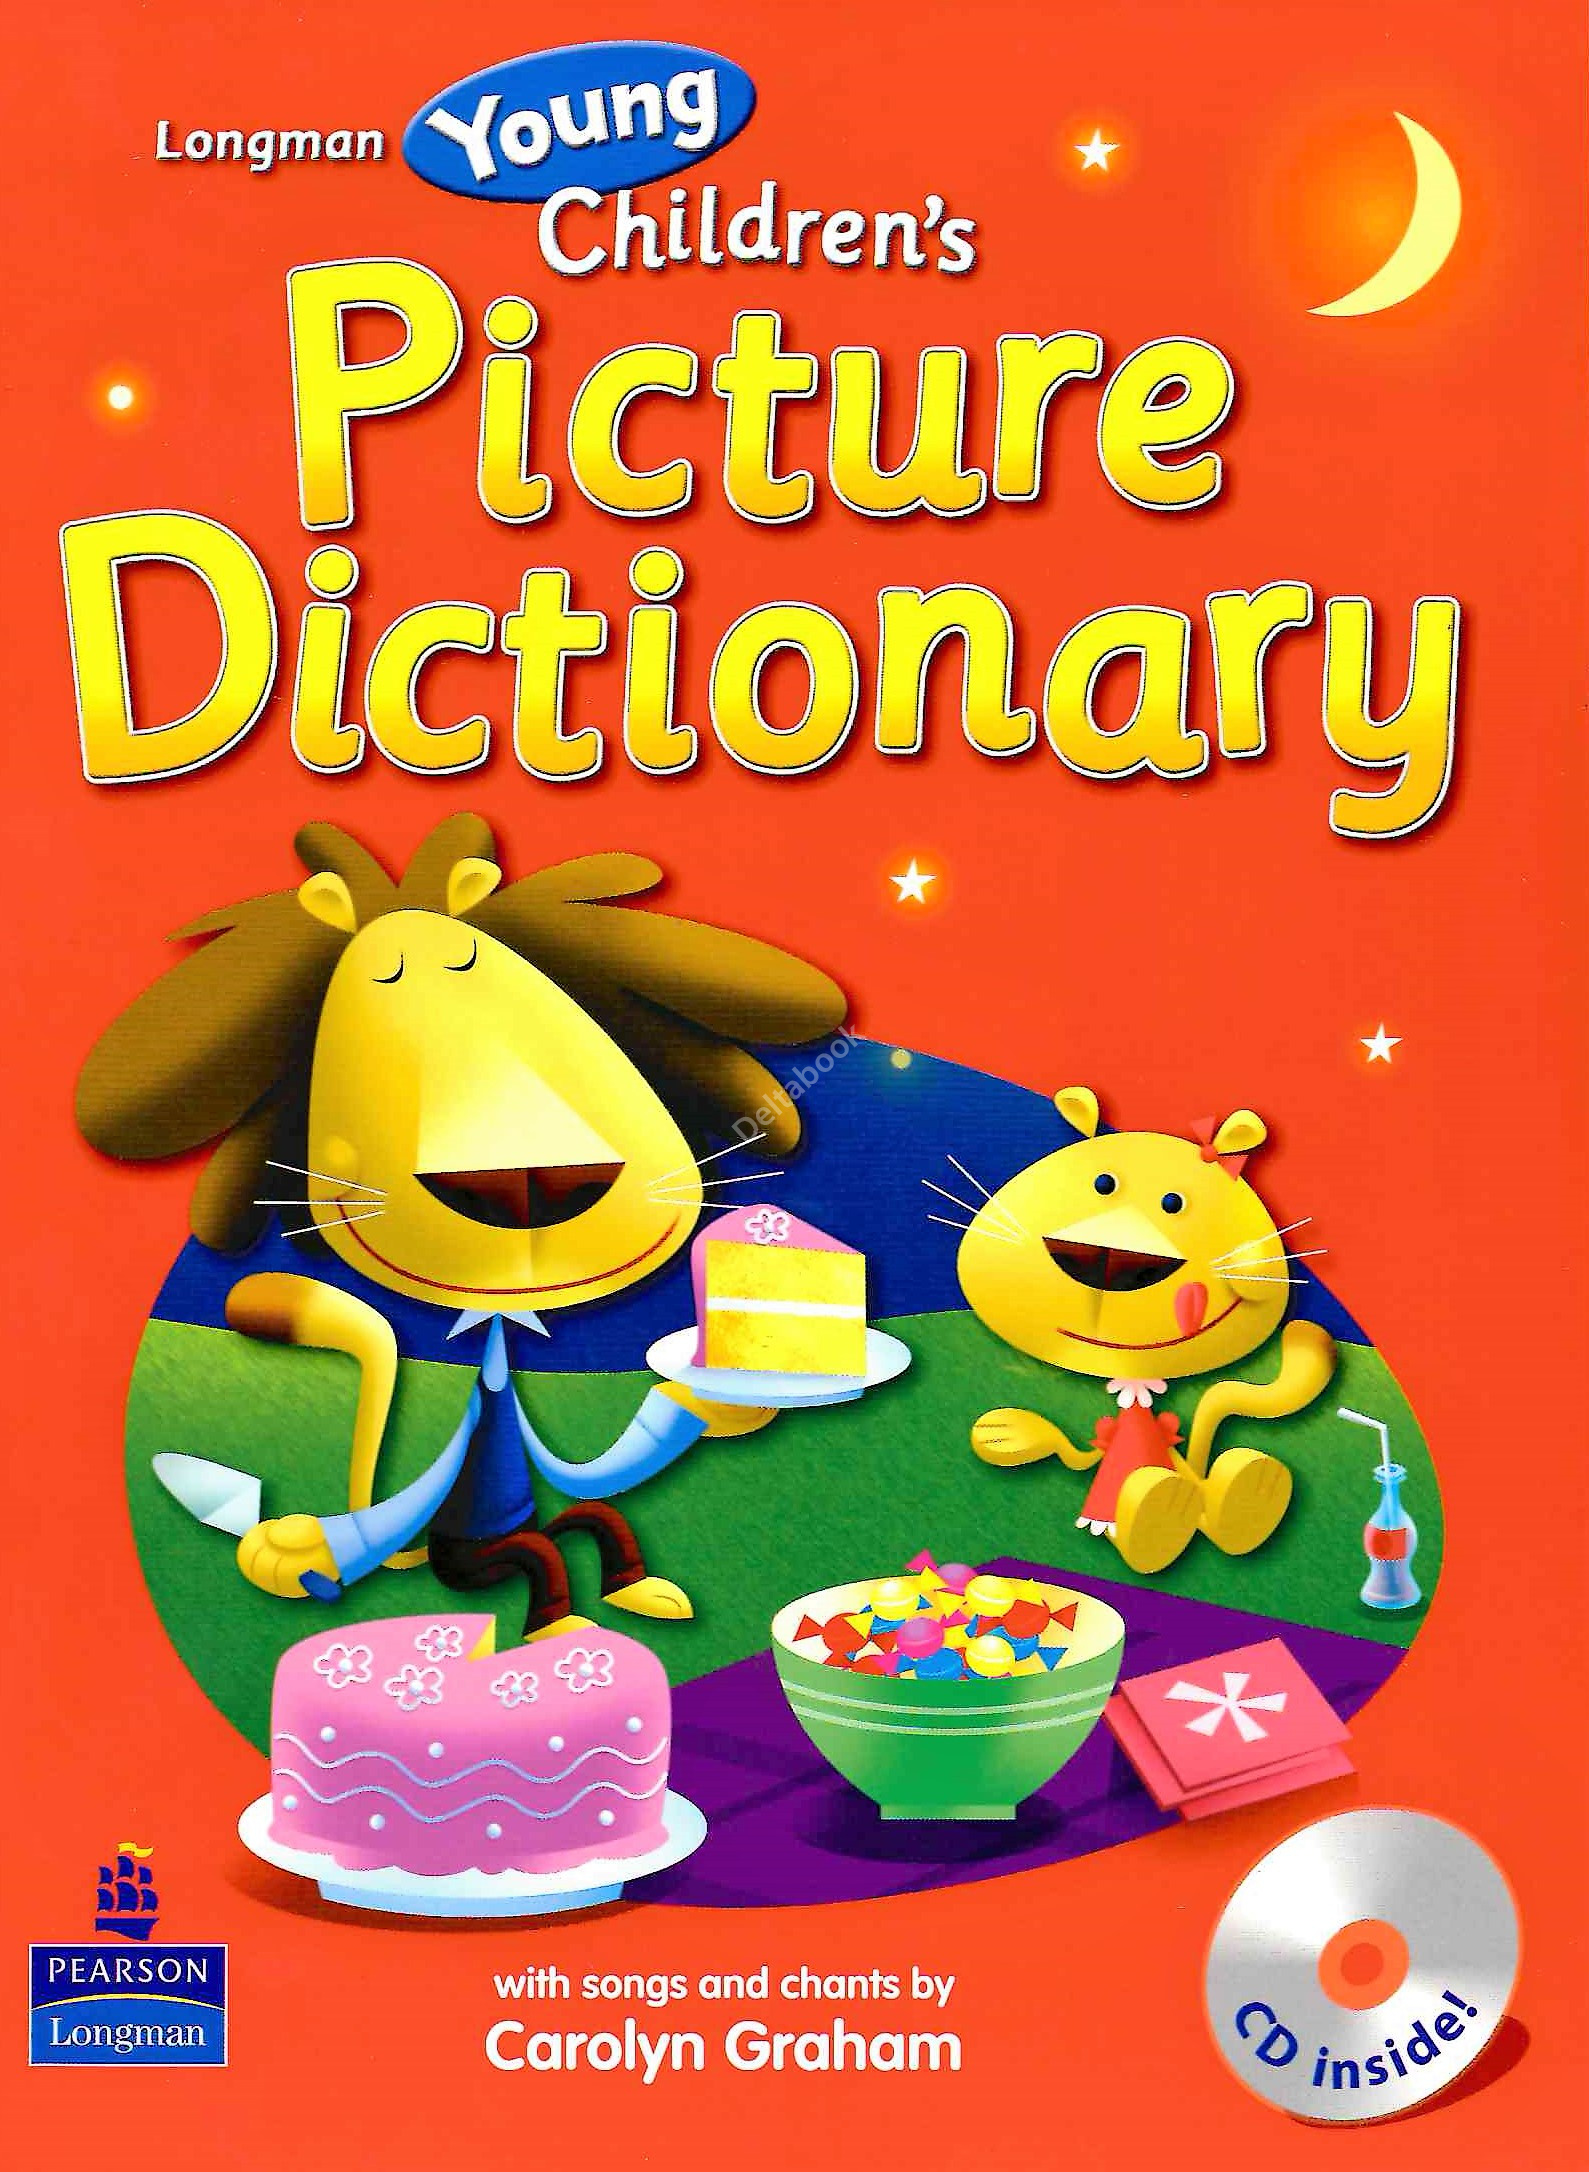 Longman Young Children's Picture Dictionary + Audio CD